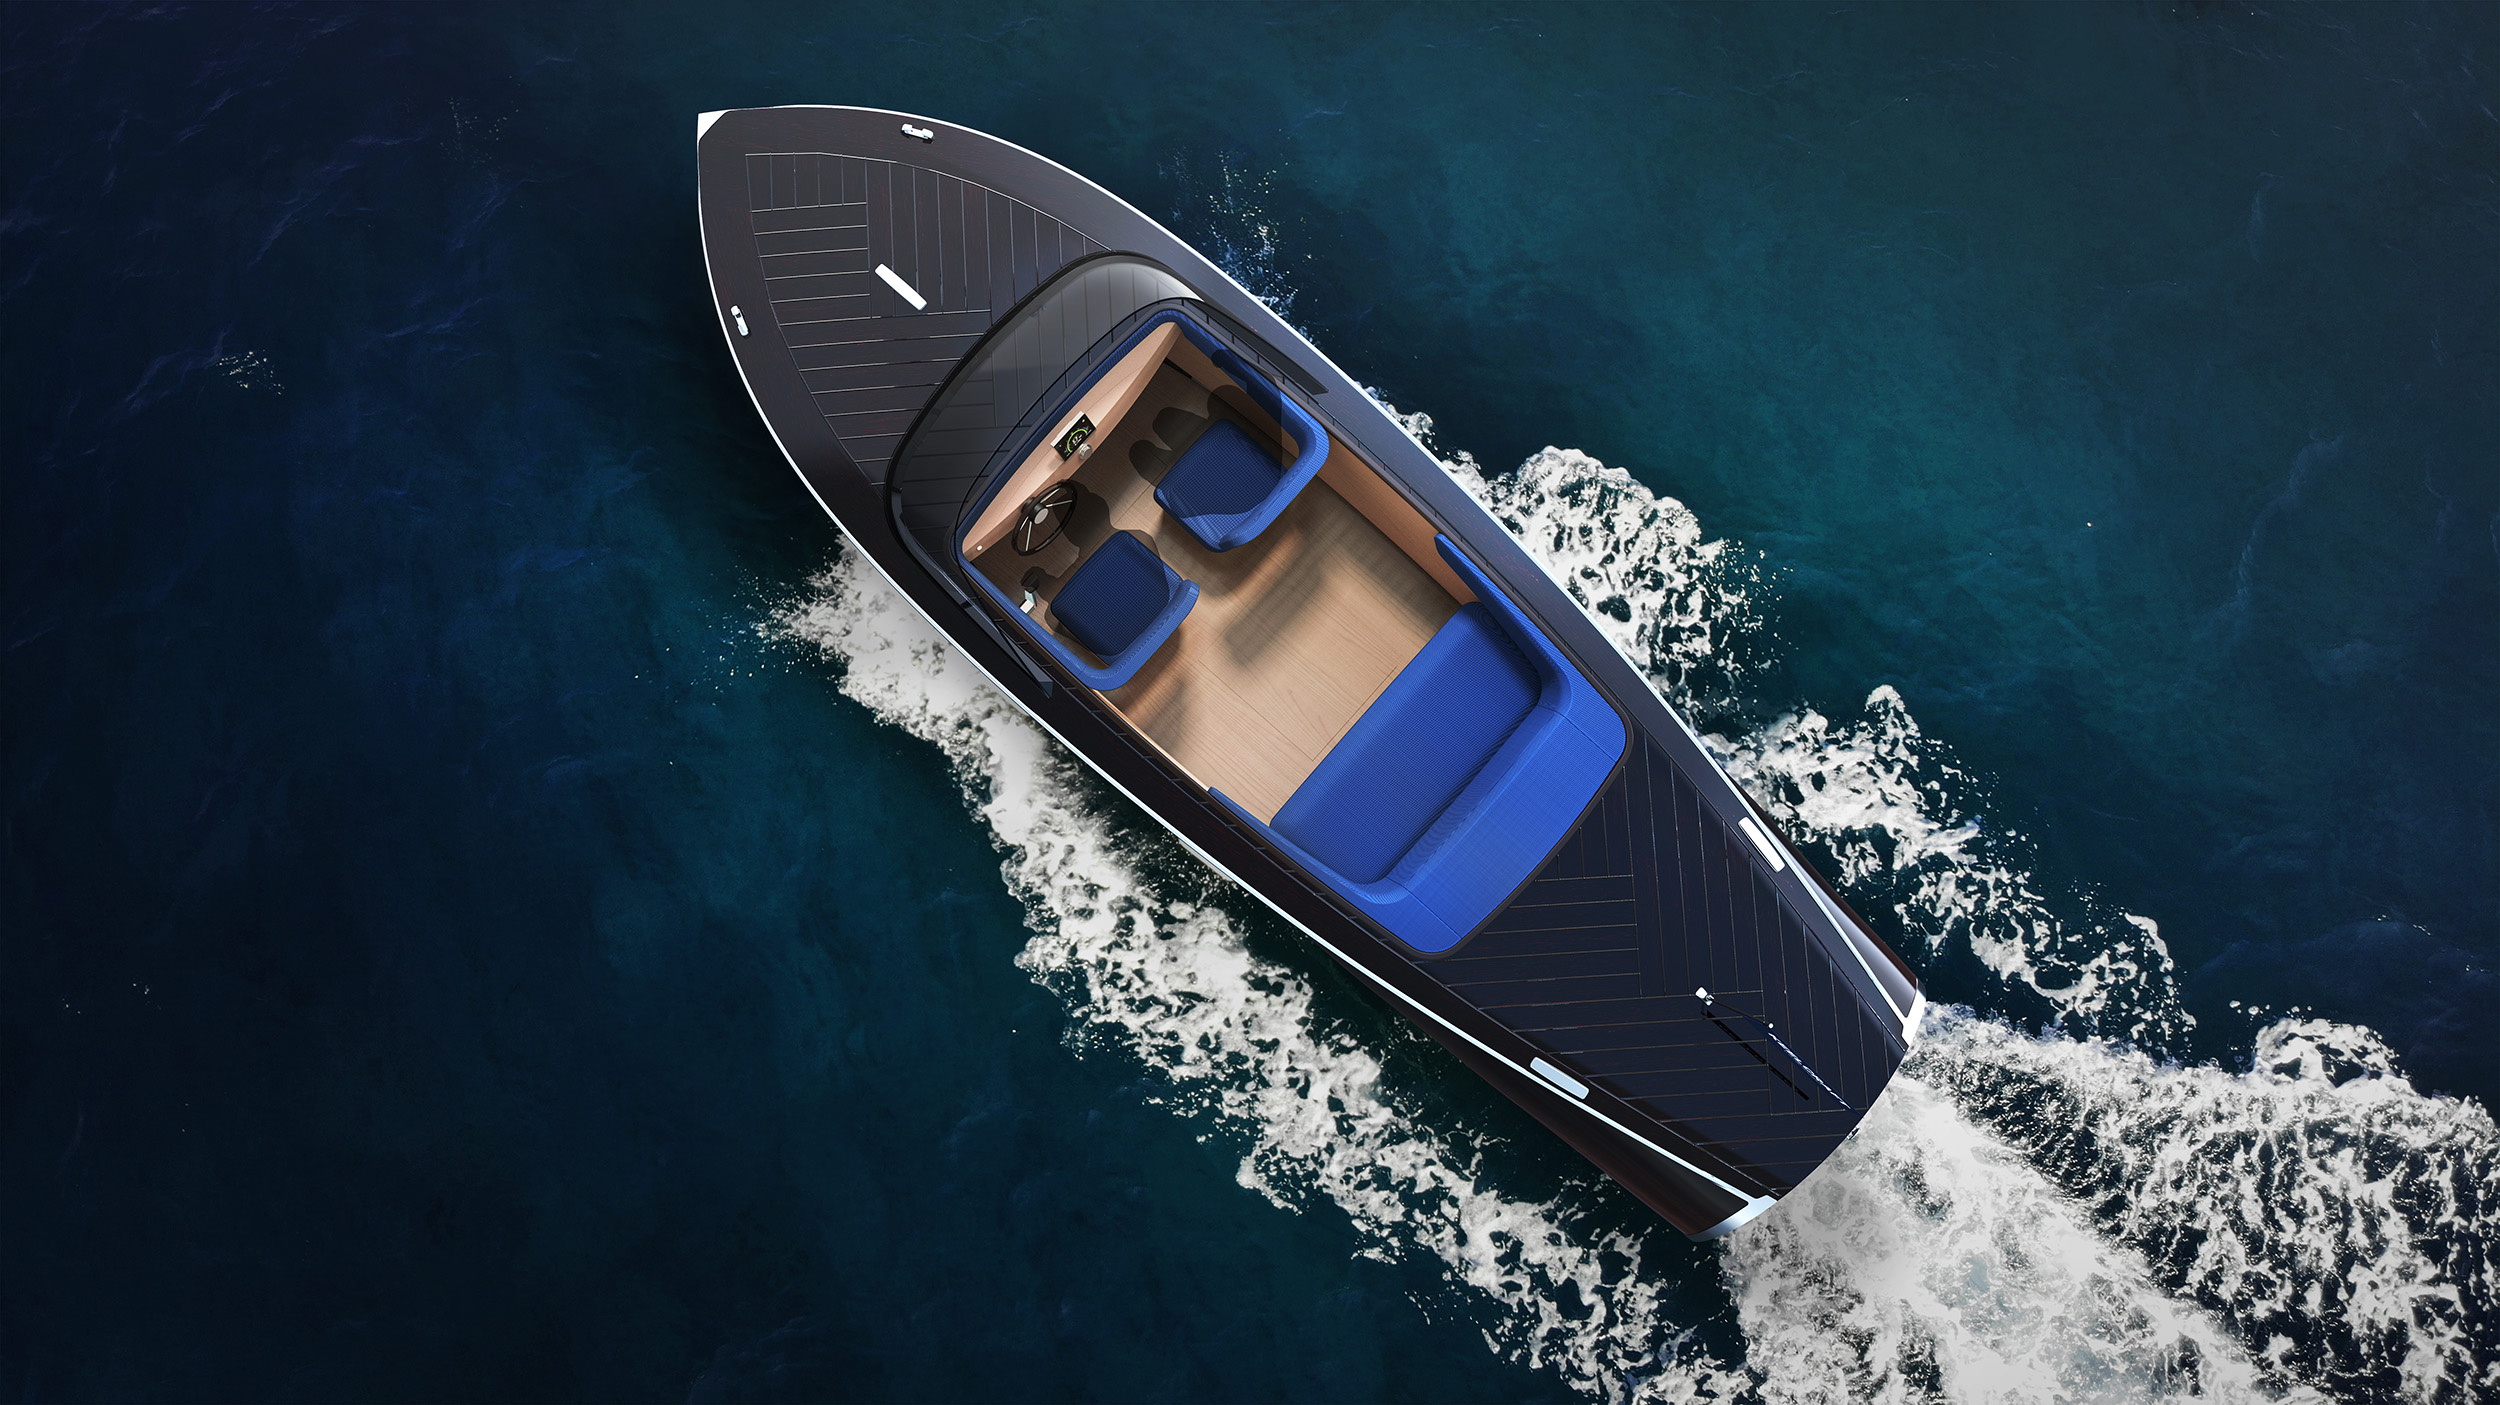 KeelCraft electric runabout top view on the water